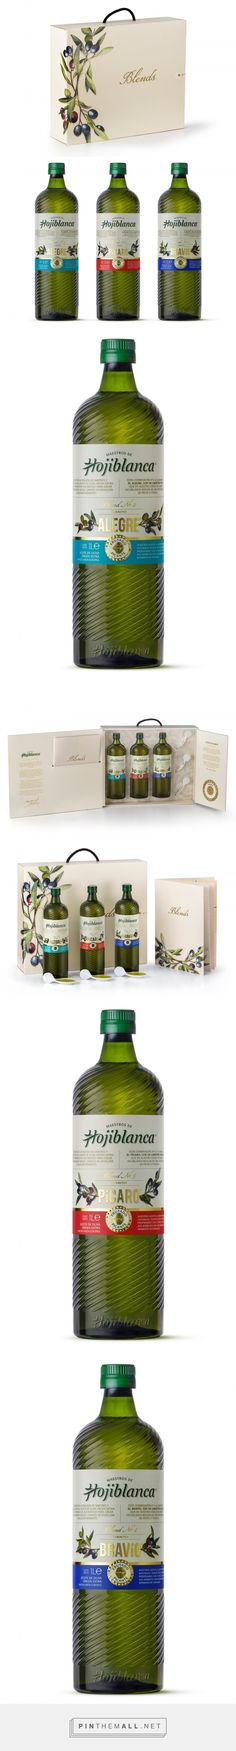 Hojiblanca Blends - Packaging of the World - Creative Package Design Gallery - http://www.packagingoftheworld.com/2017/05/hojiblanca-blends.html